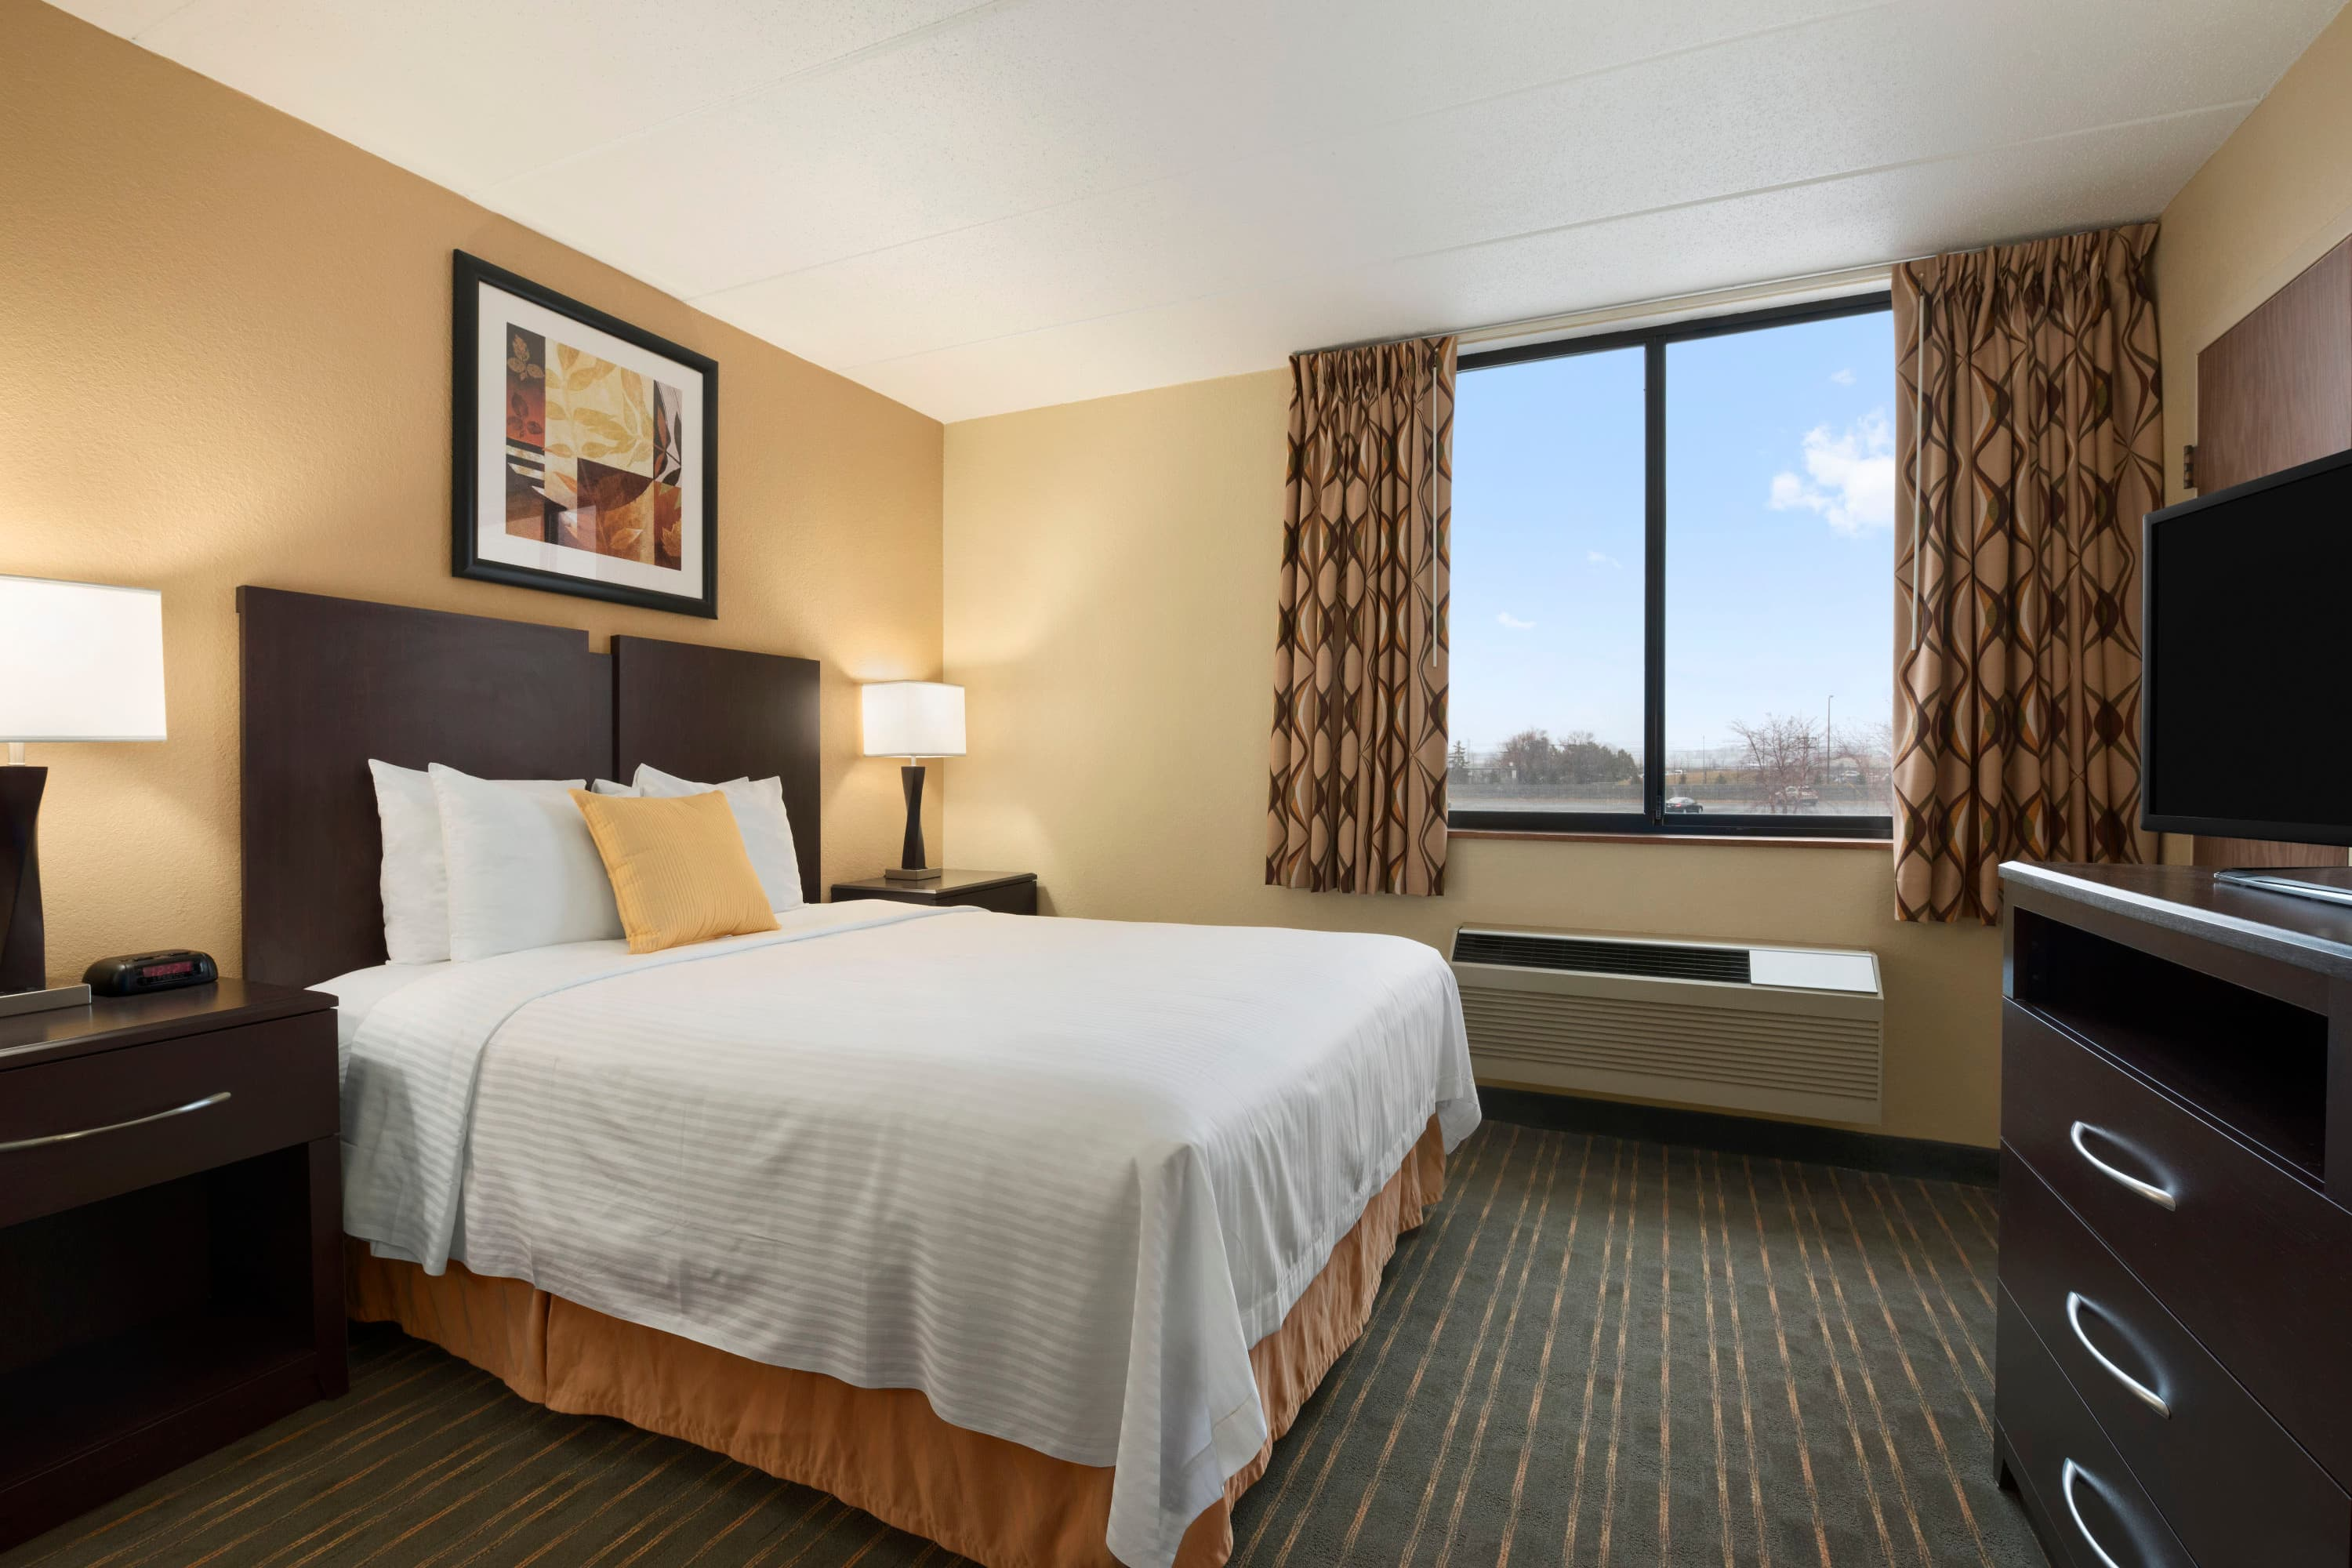 Guest room at the Days Hotel University Ave SE in Minneapolis, Minnesota